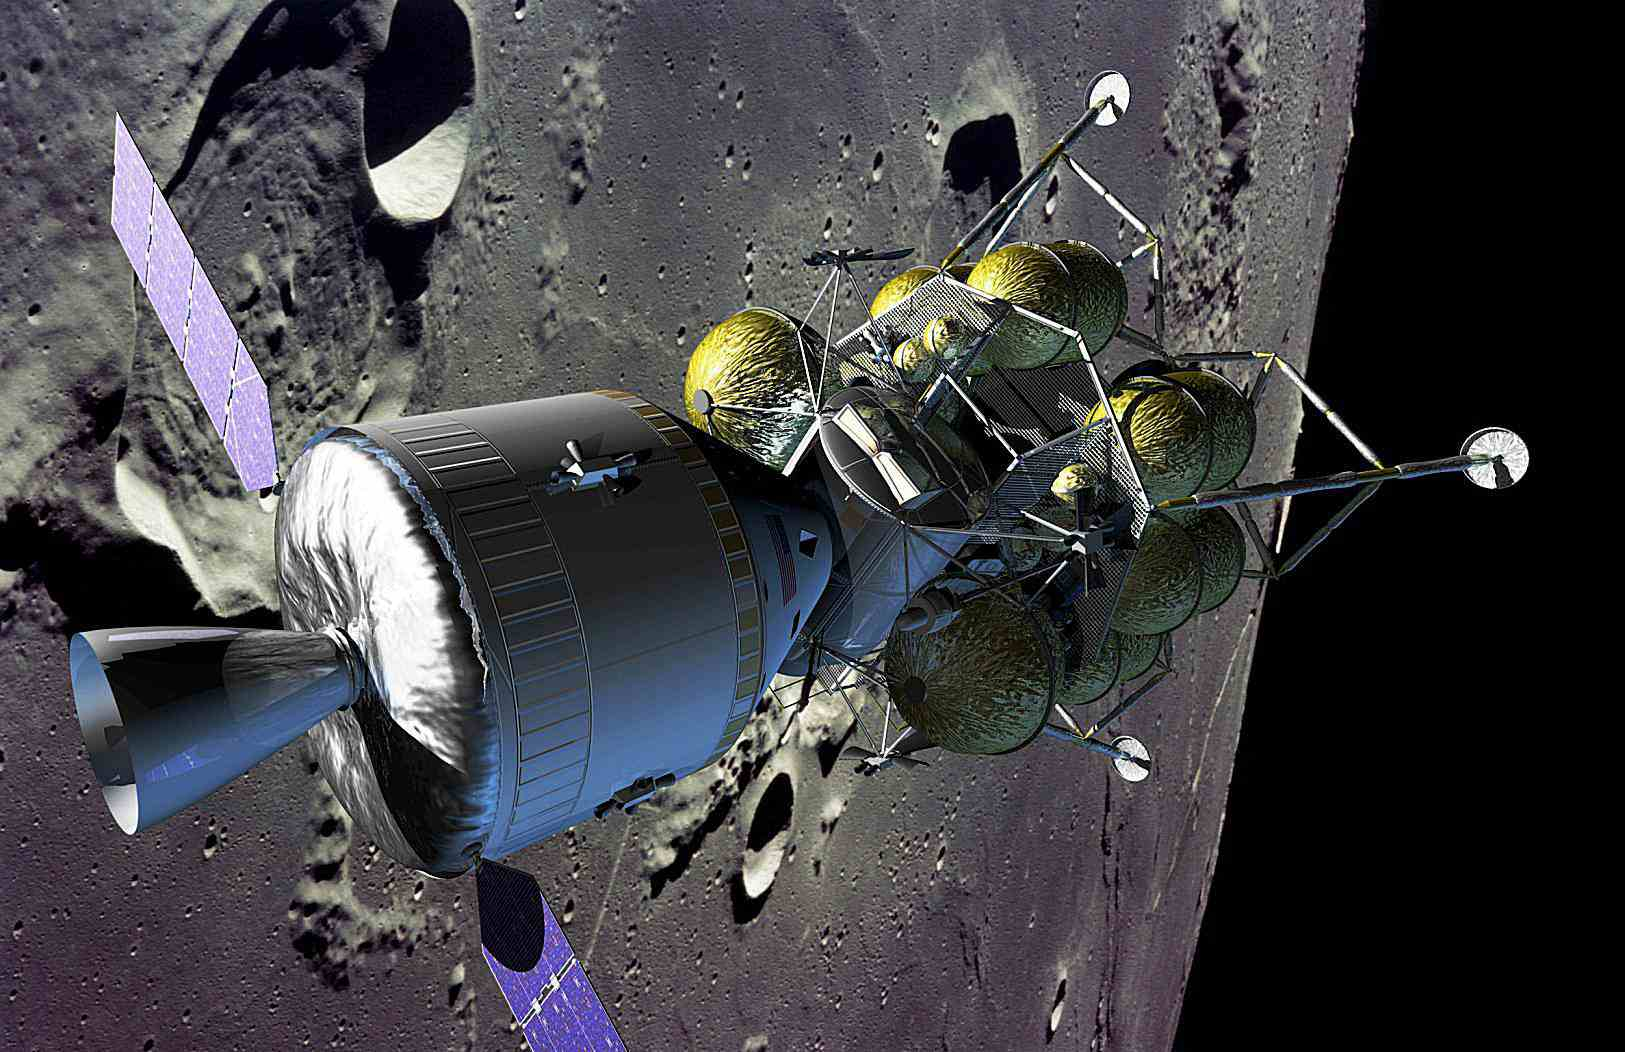 NASA's new Crew Exploration Vehicle (CEV) with solar panels deployed, docked with a lunar lander.